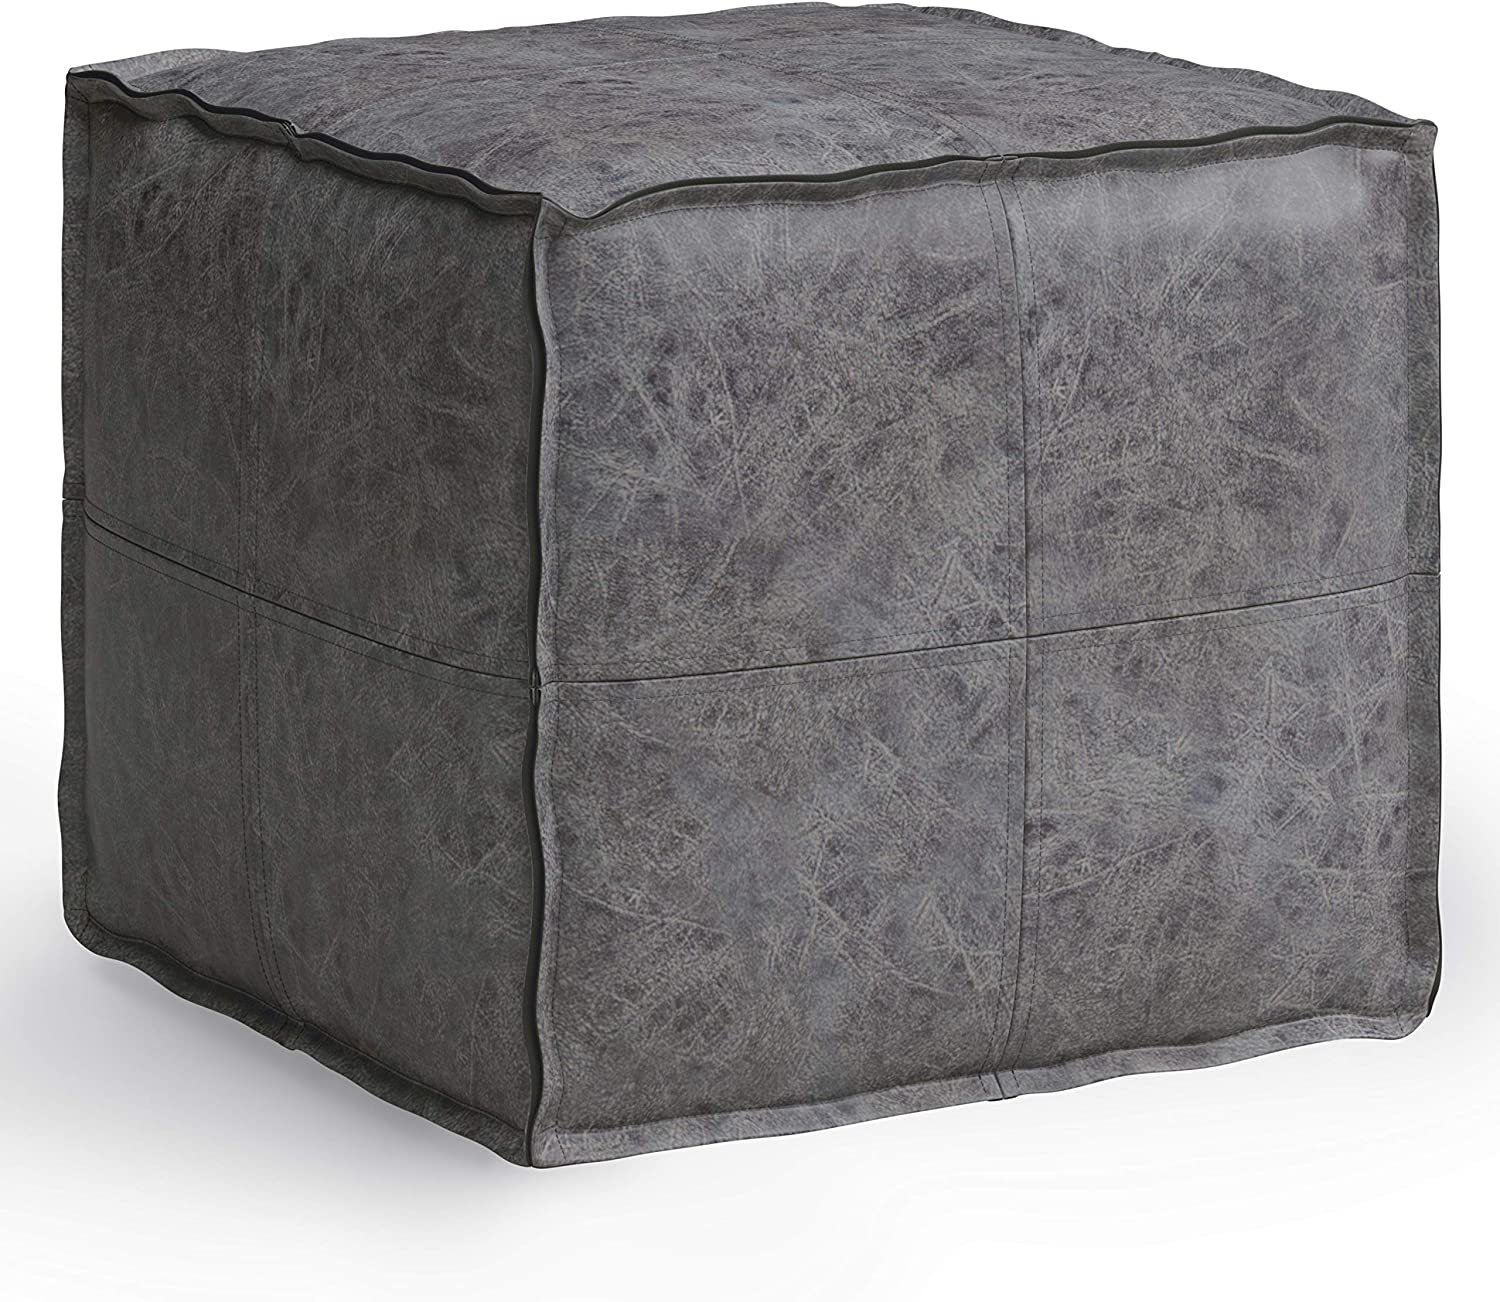 SIMPLIHOME Brody Square Pouf, Footstool, Upholstered in Distressed Black Faux Leather, for the Living Room, Bedroom and Kids Room, Transitional, Modern